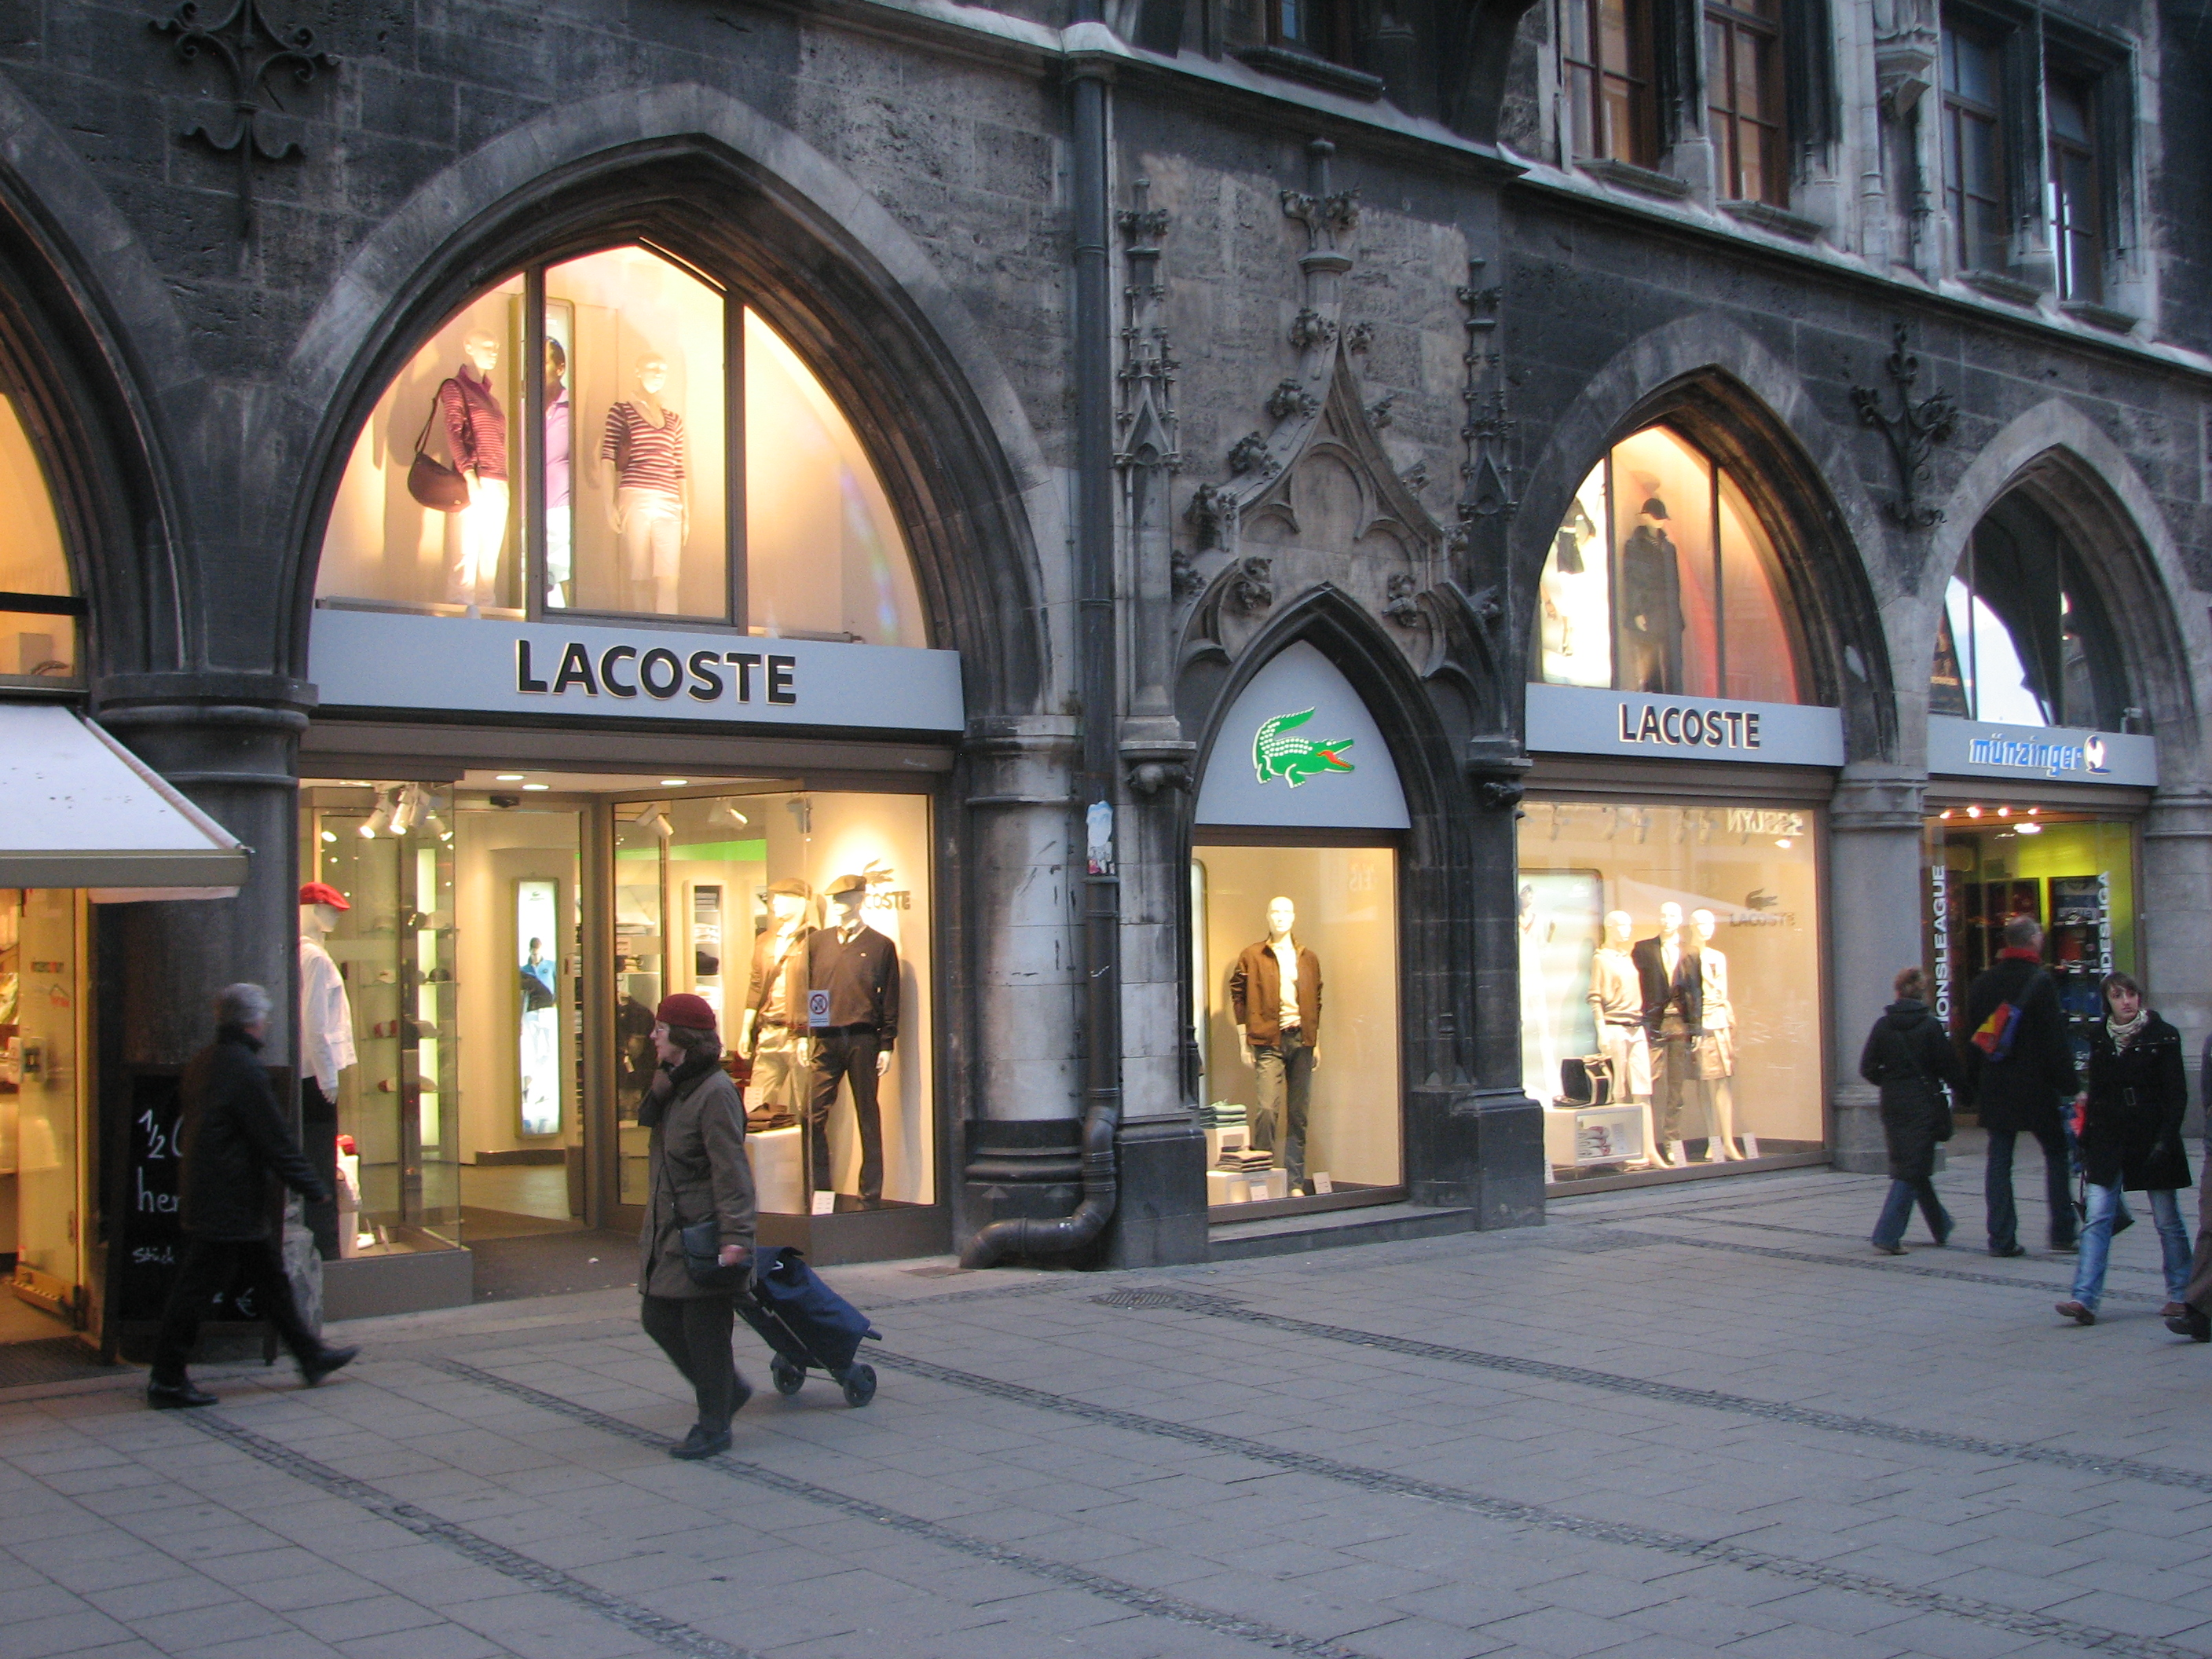 free shipping 26220 d9a93 File:Lacoste store.jpg - Wikimedia Commons